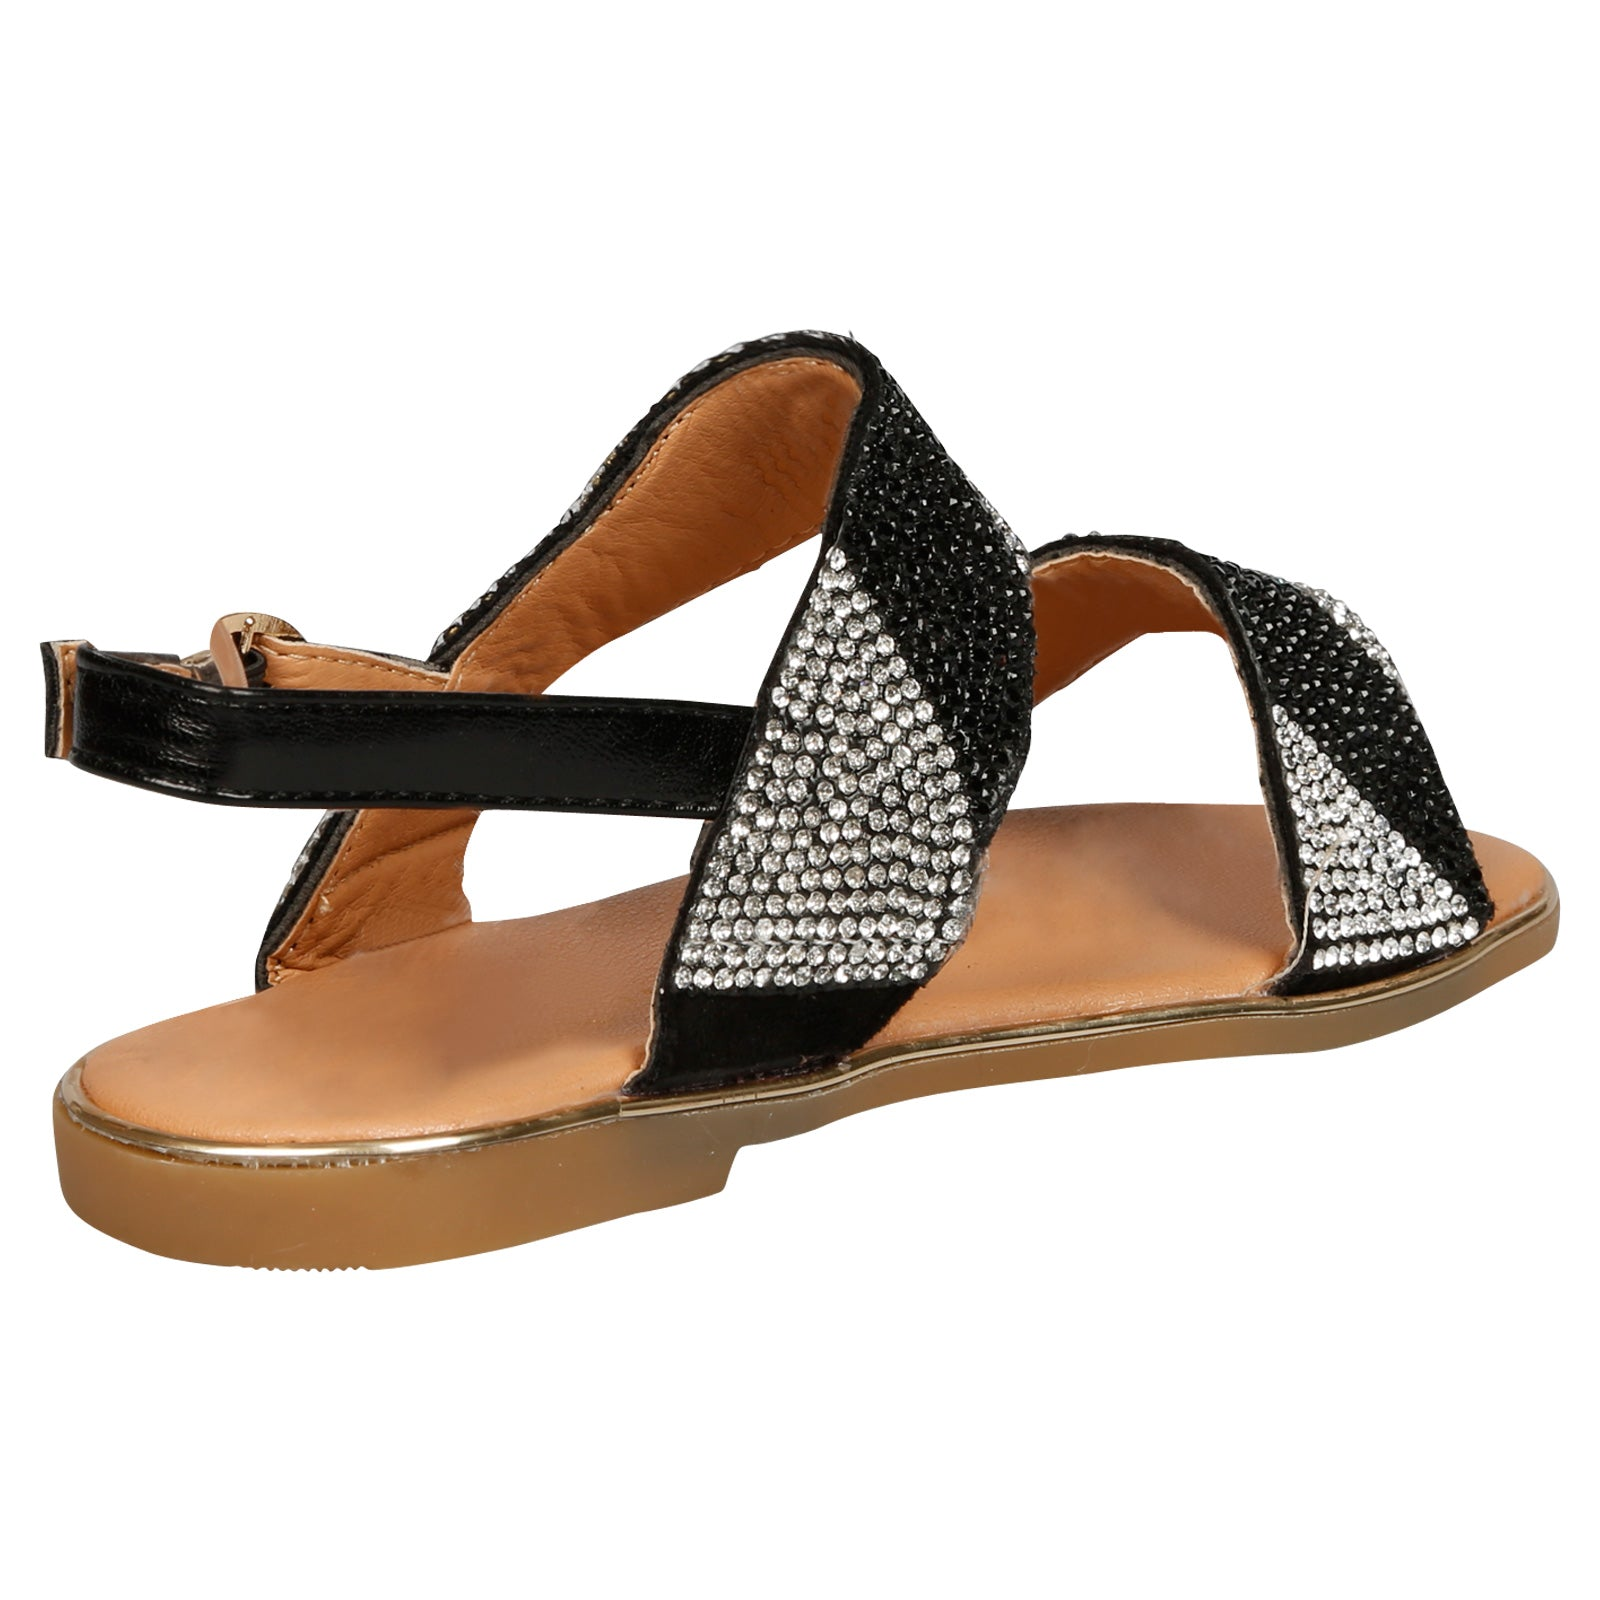 Lily Girls Two Tone Diamante Sandals in Black - Feet First Fashion